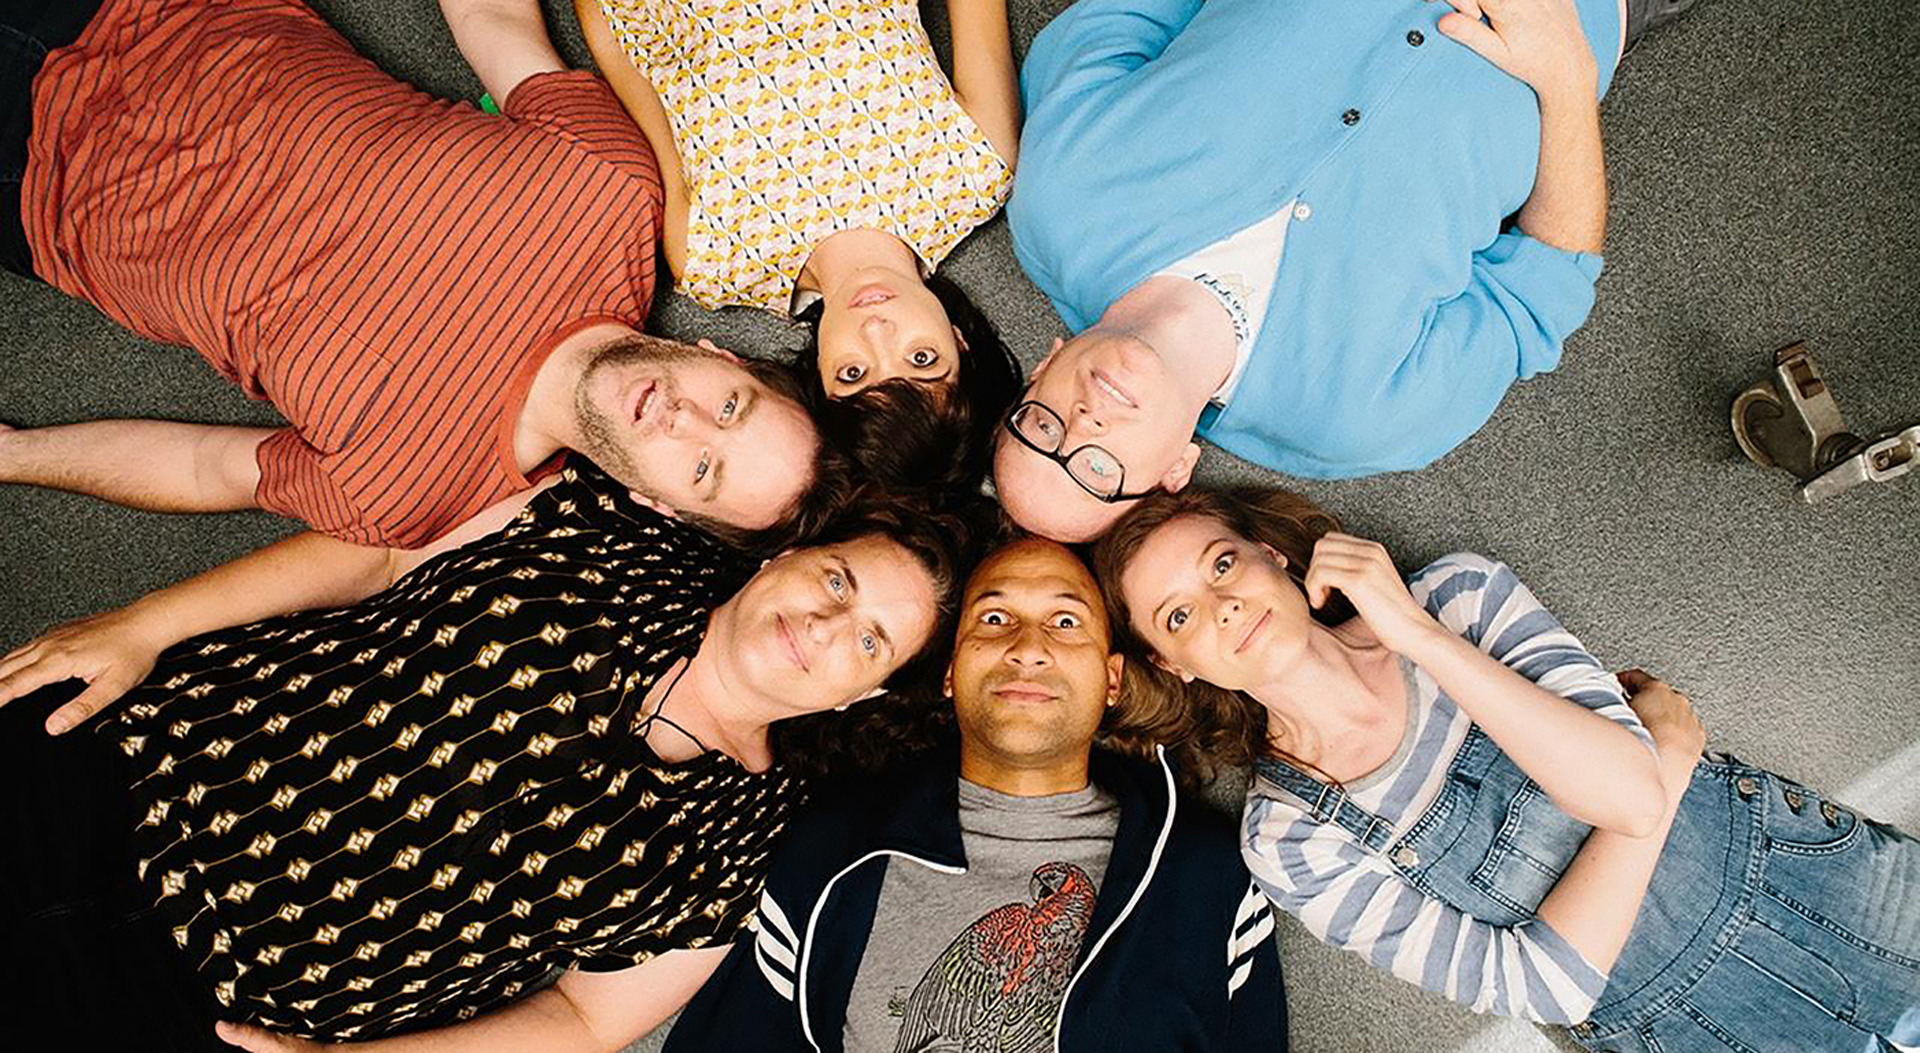 Clockwise from 10:00 o'clock: Mike Birbiglia, Kate Micucci, Chris Gethard, Gillian Jacobs, Keegan-Michael Key and Tami Sagher star in Don't Think Twice.